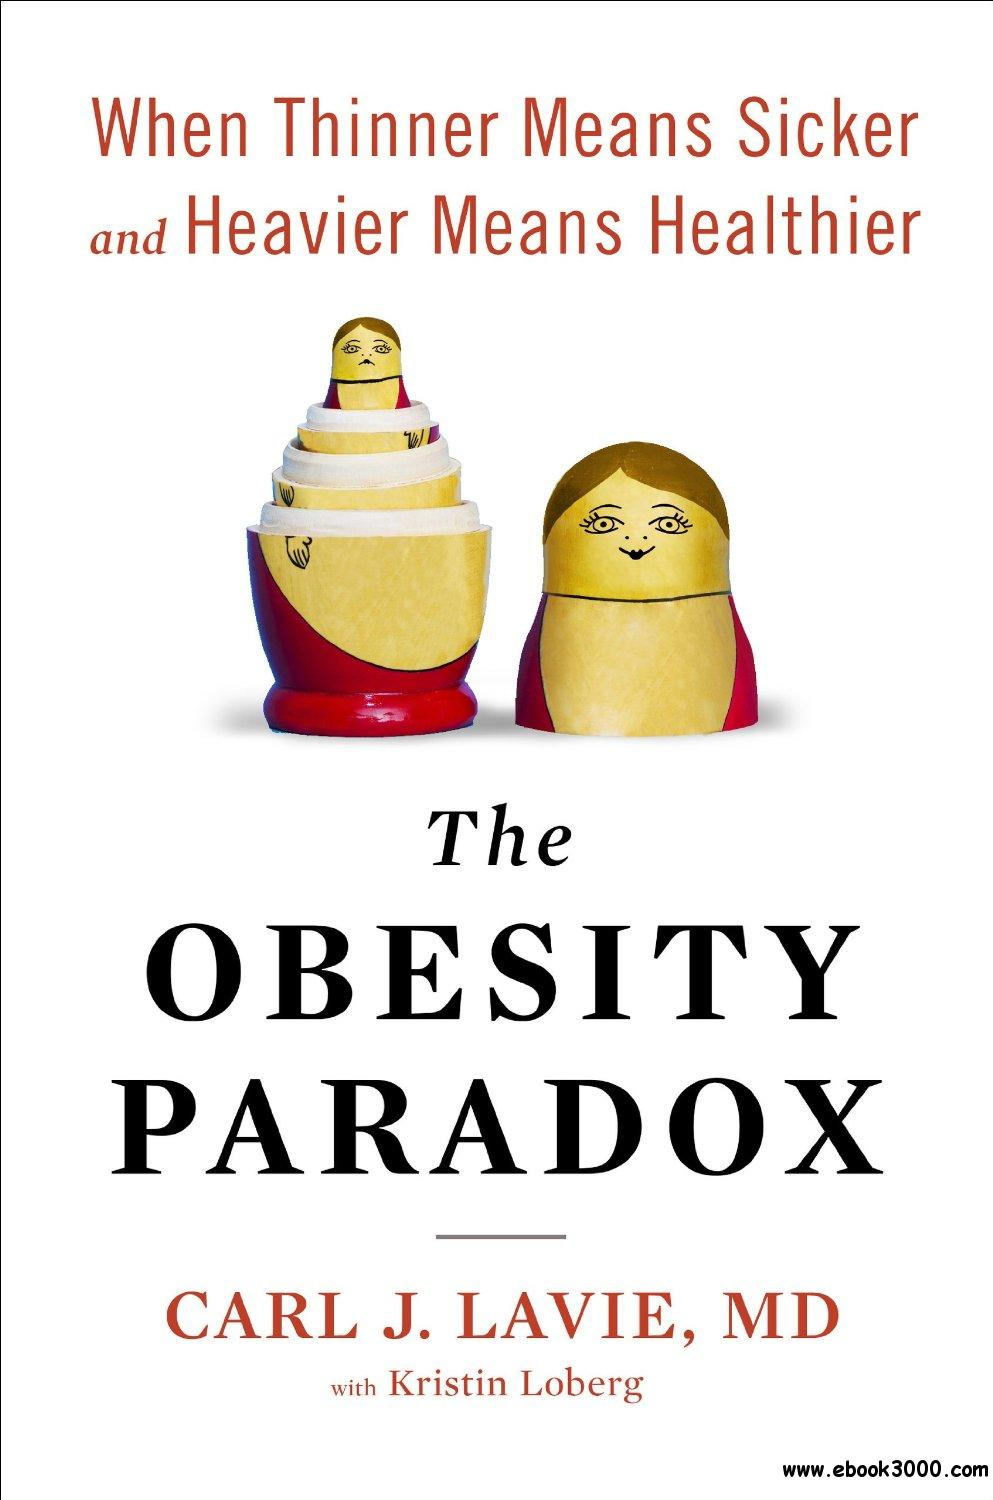 The Obesity Paradox: When Thinner Means Sicker and Heavier Means Healthier free download